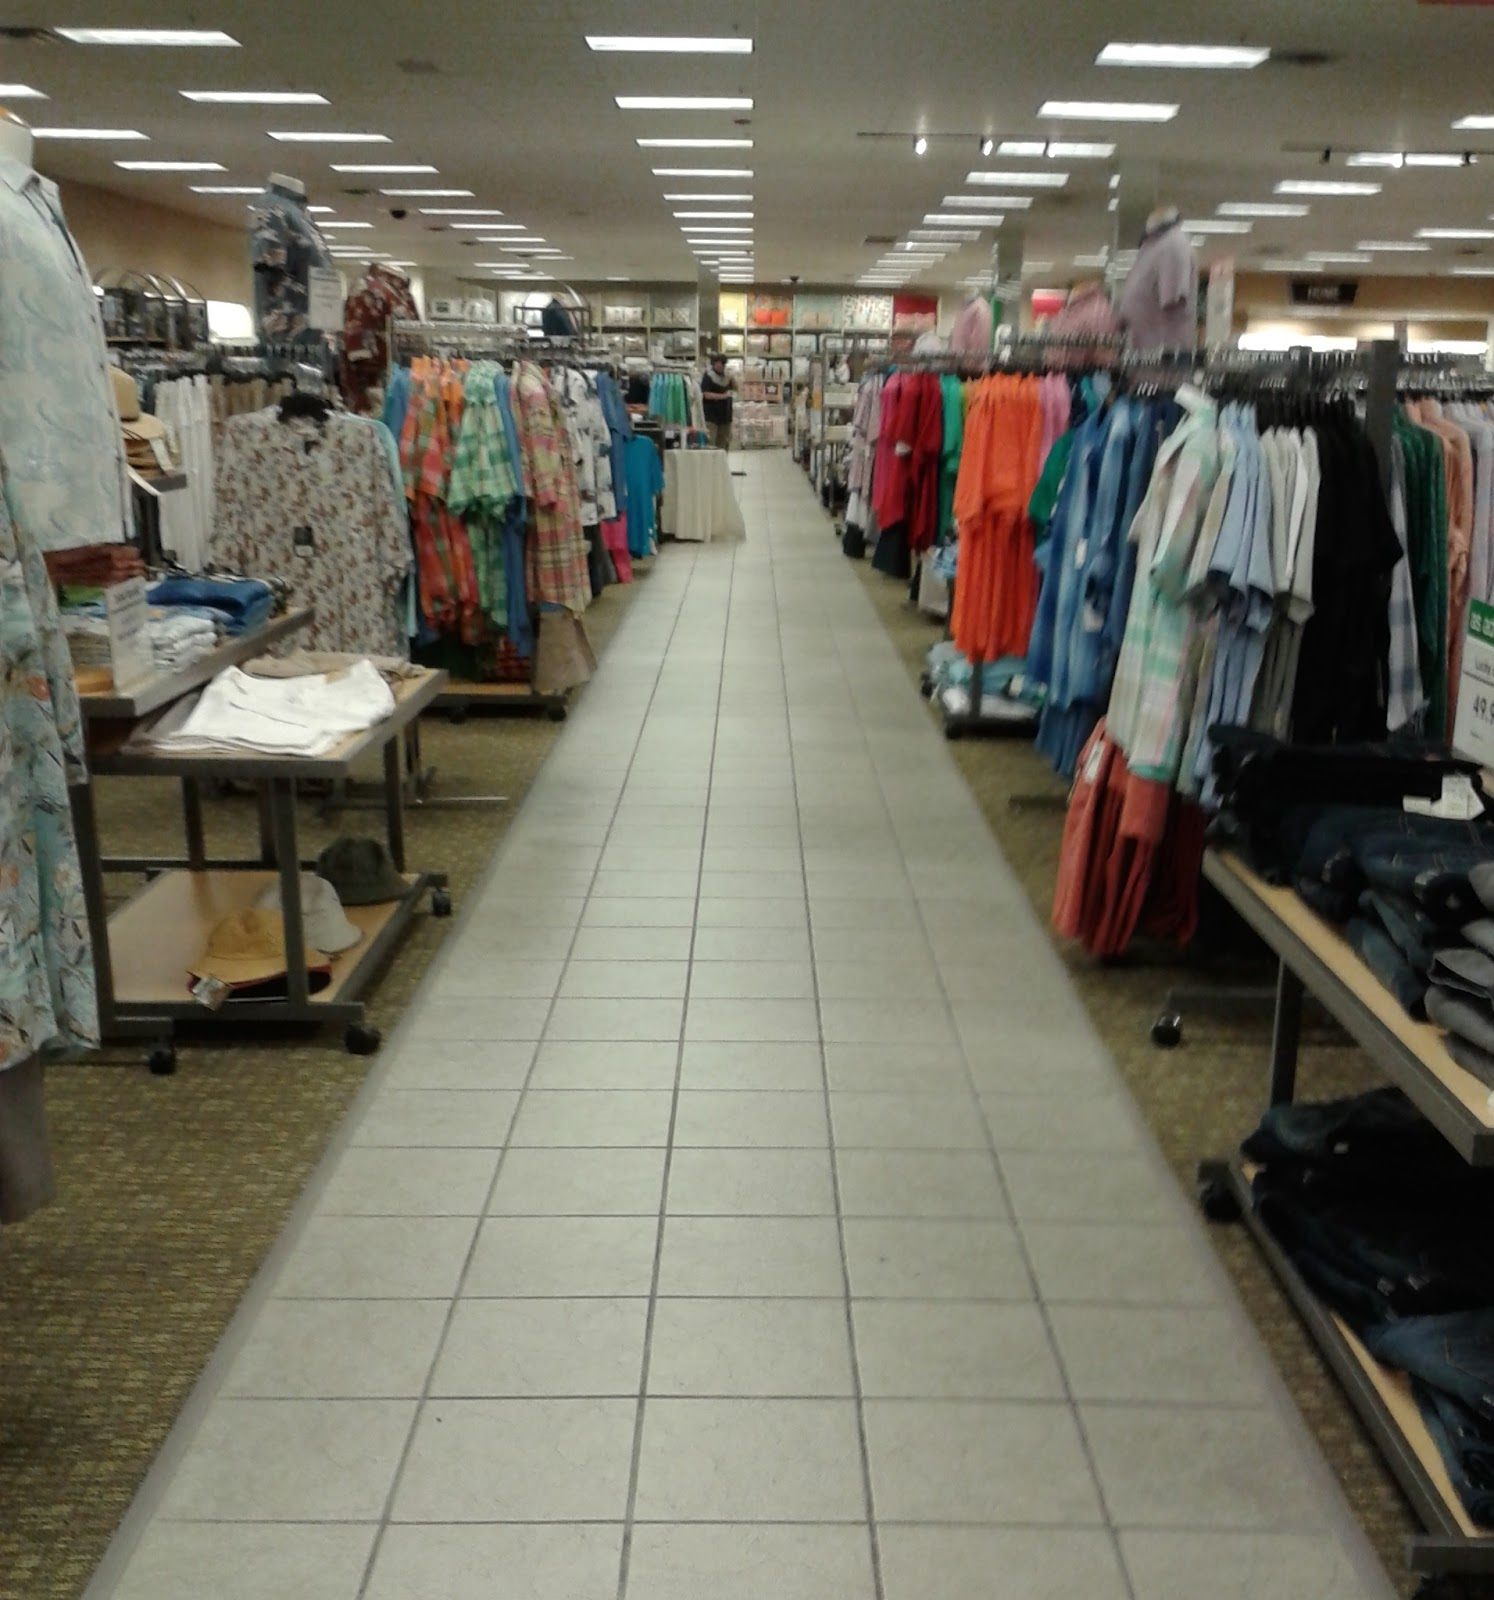 Captivating If Youu0027re Not Familiar With Stein Mart, Theyu0027re A Department Store Chain  That Sells Merchandise Of The Same Type And Pricepoint Like You Would Find  At A ...